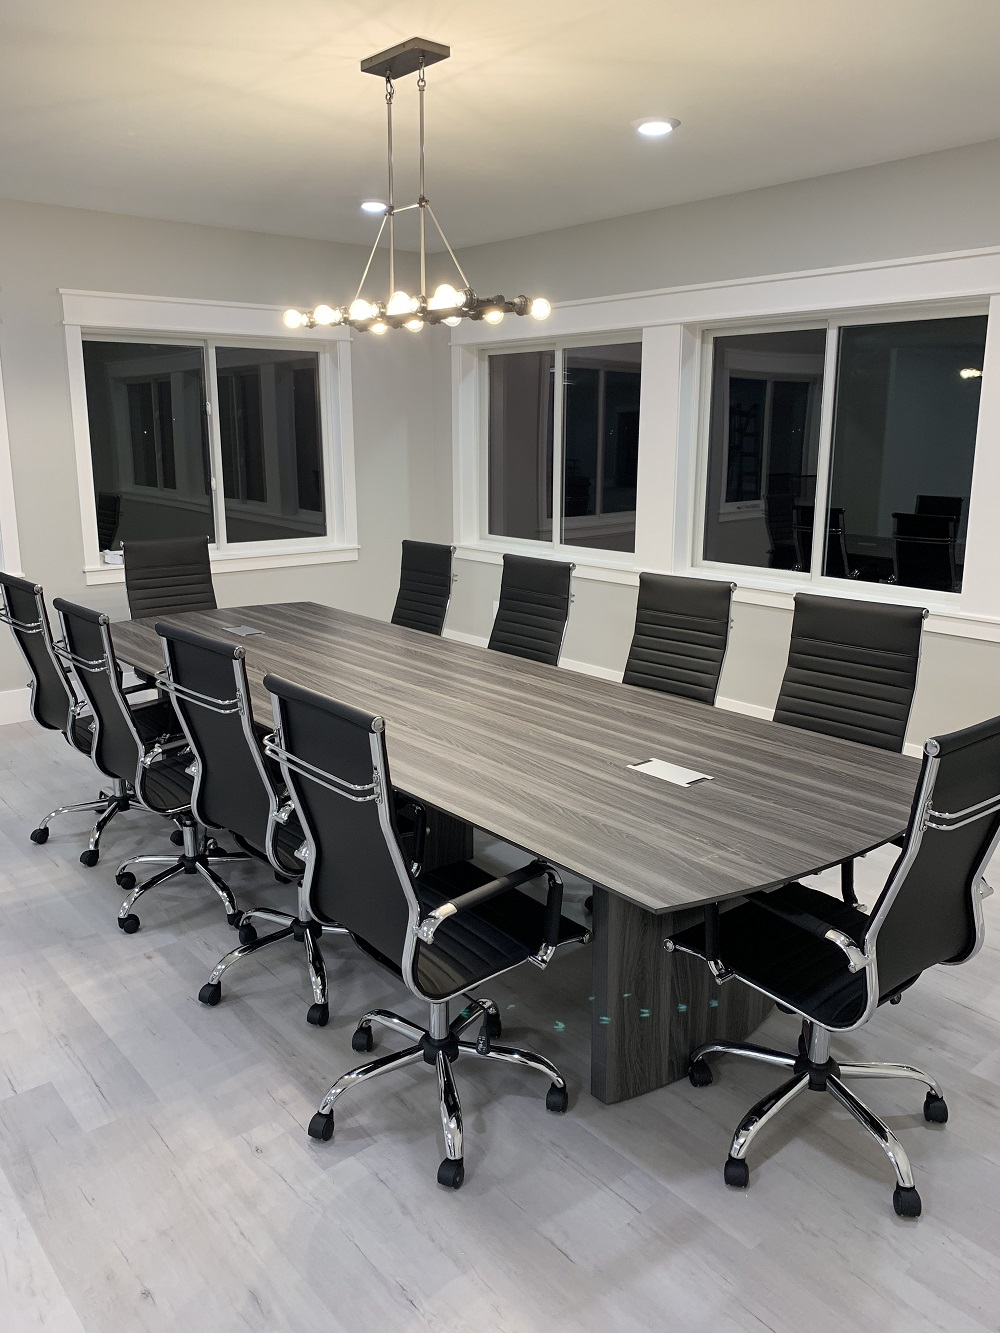 Outback Headquarters - Conference Room